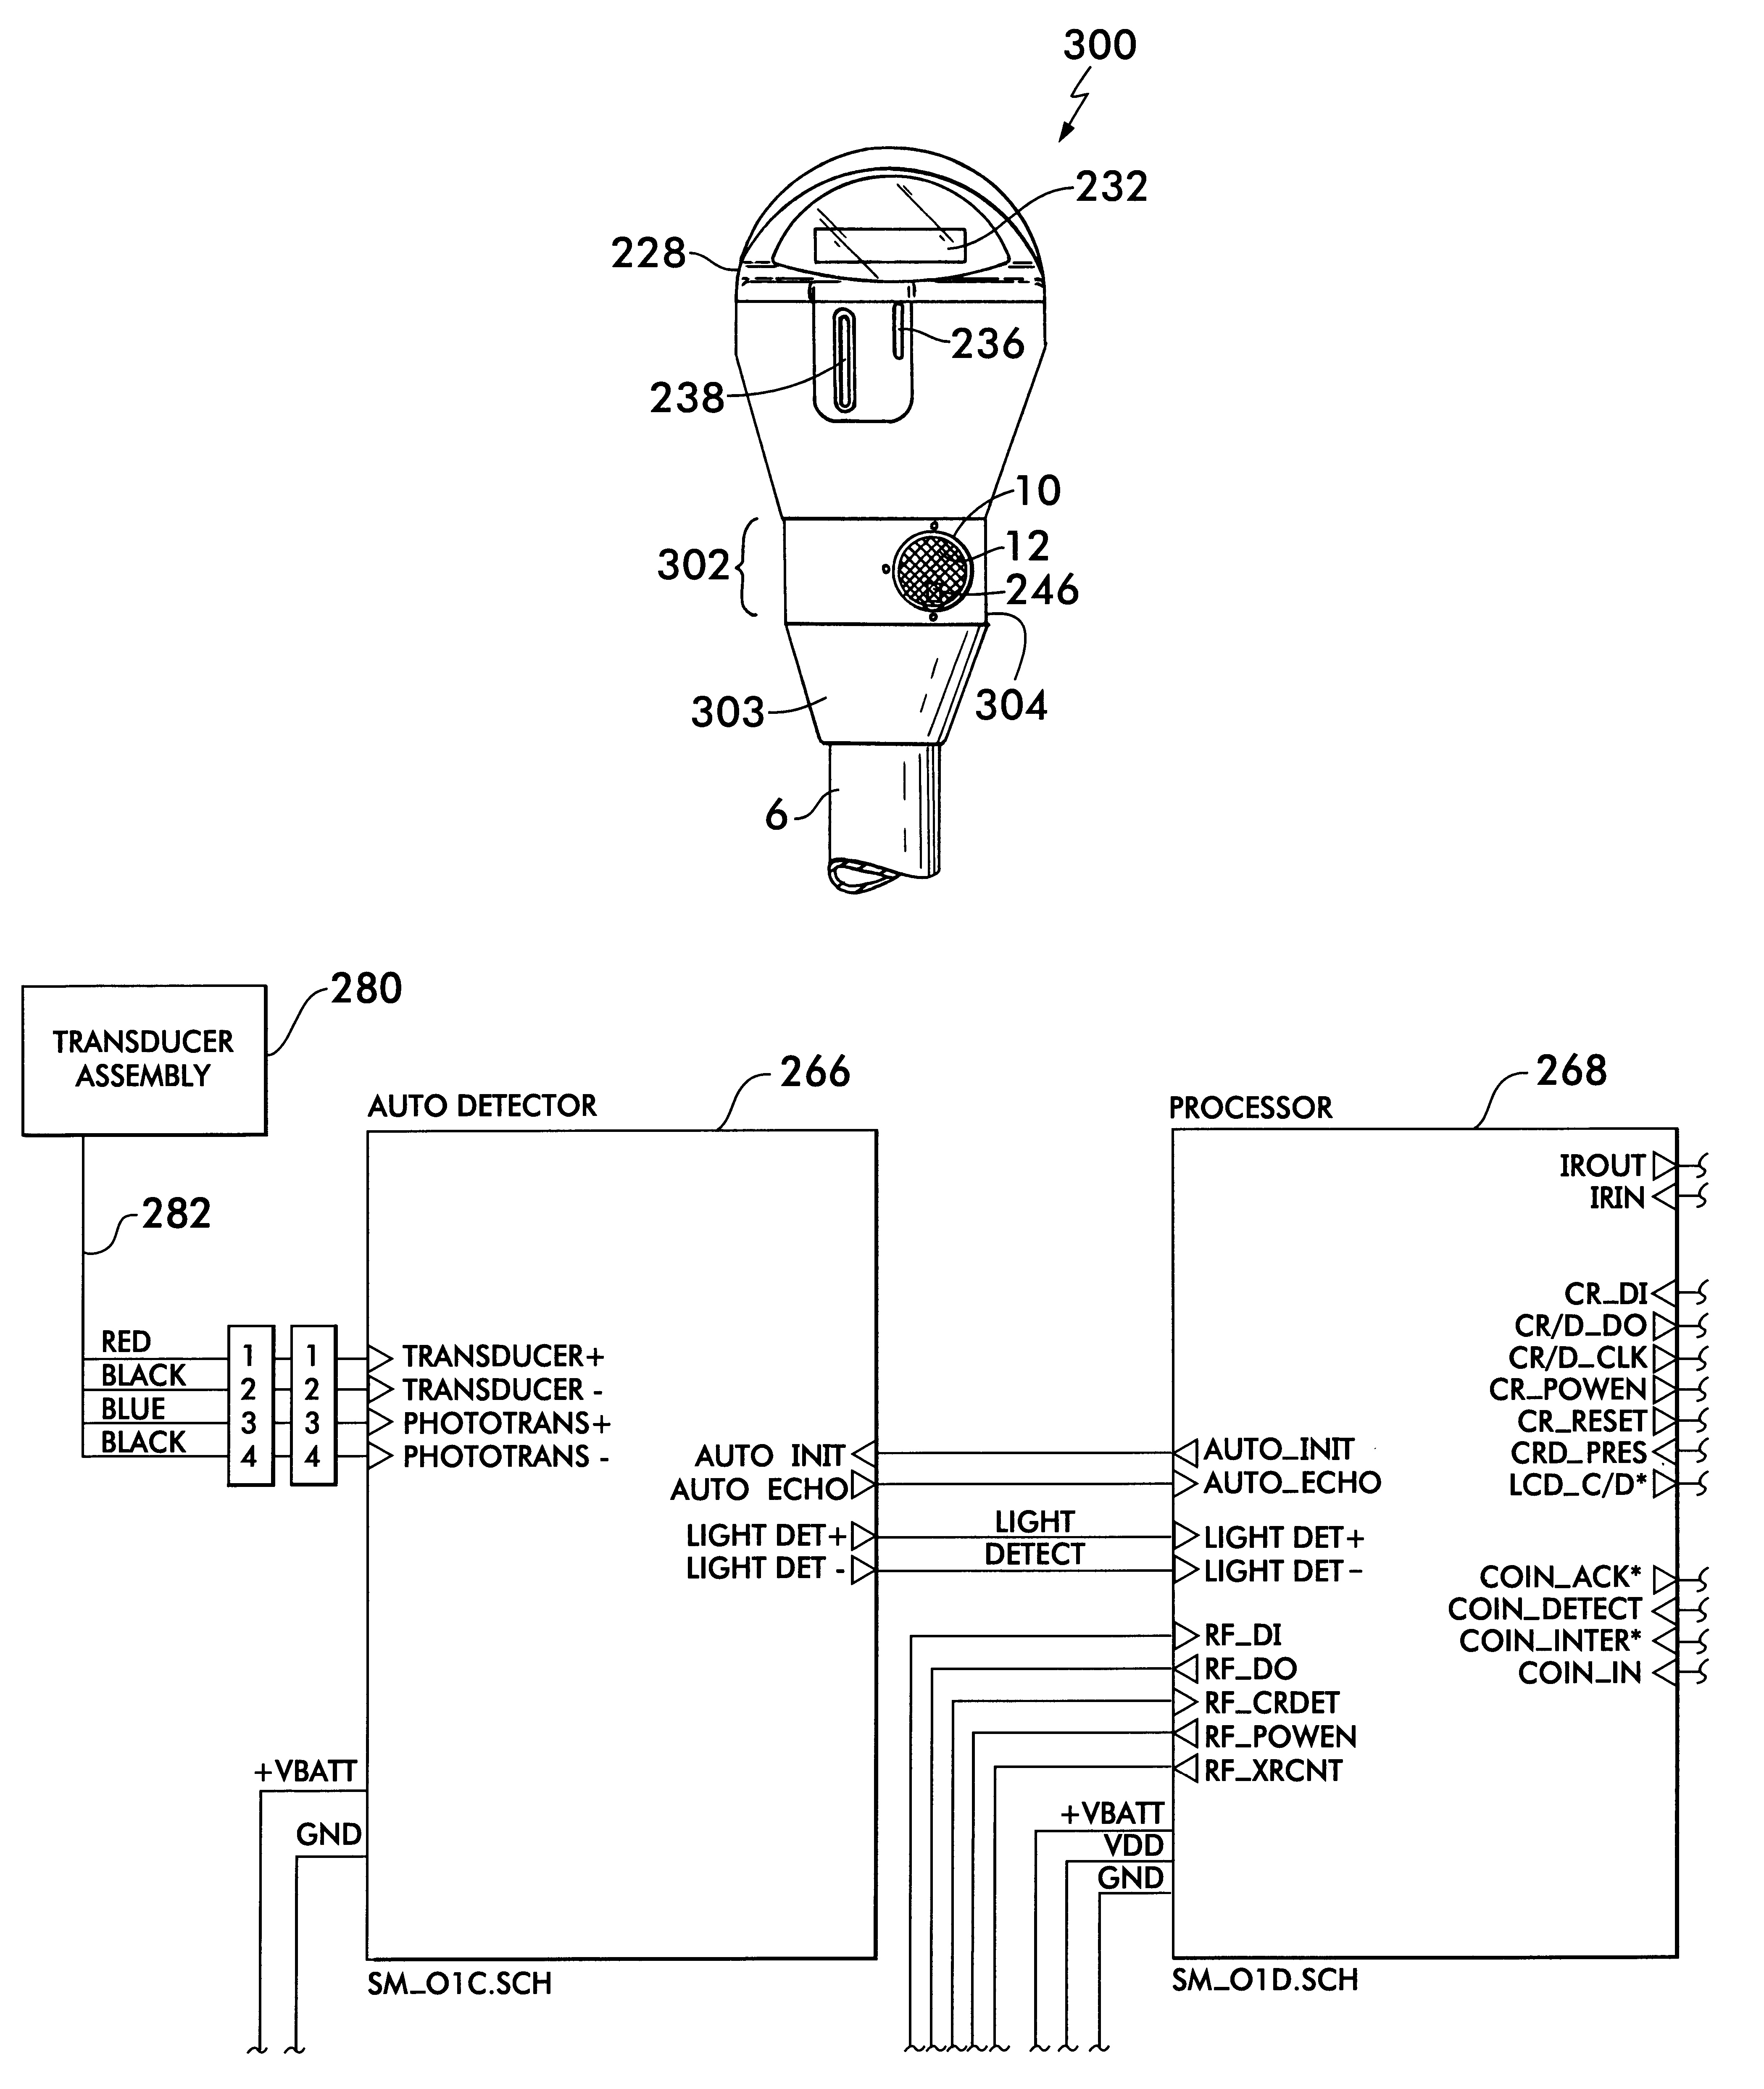 patent us6195015 - electronic parking meter